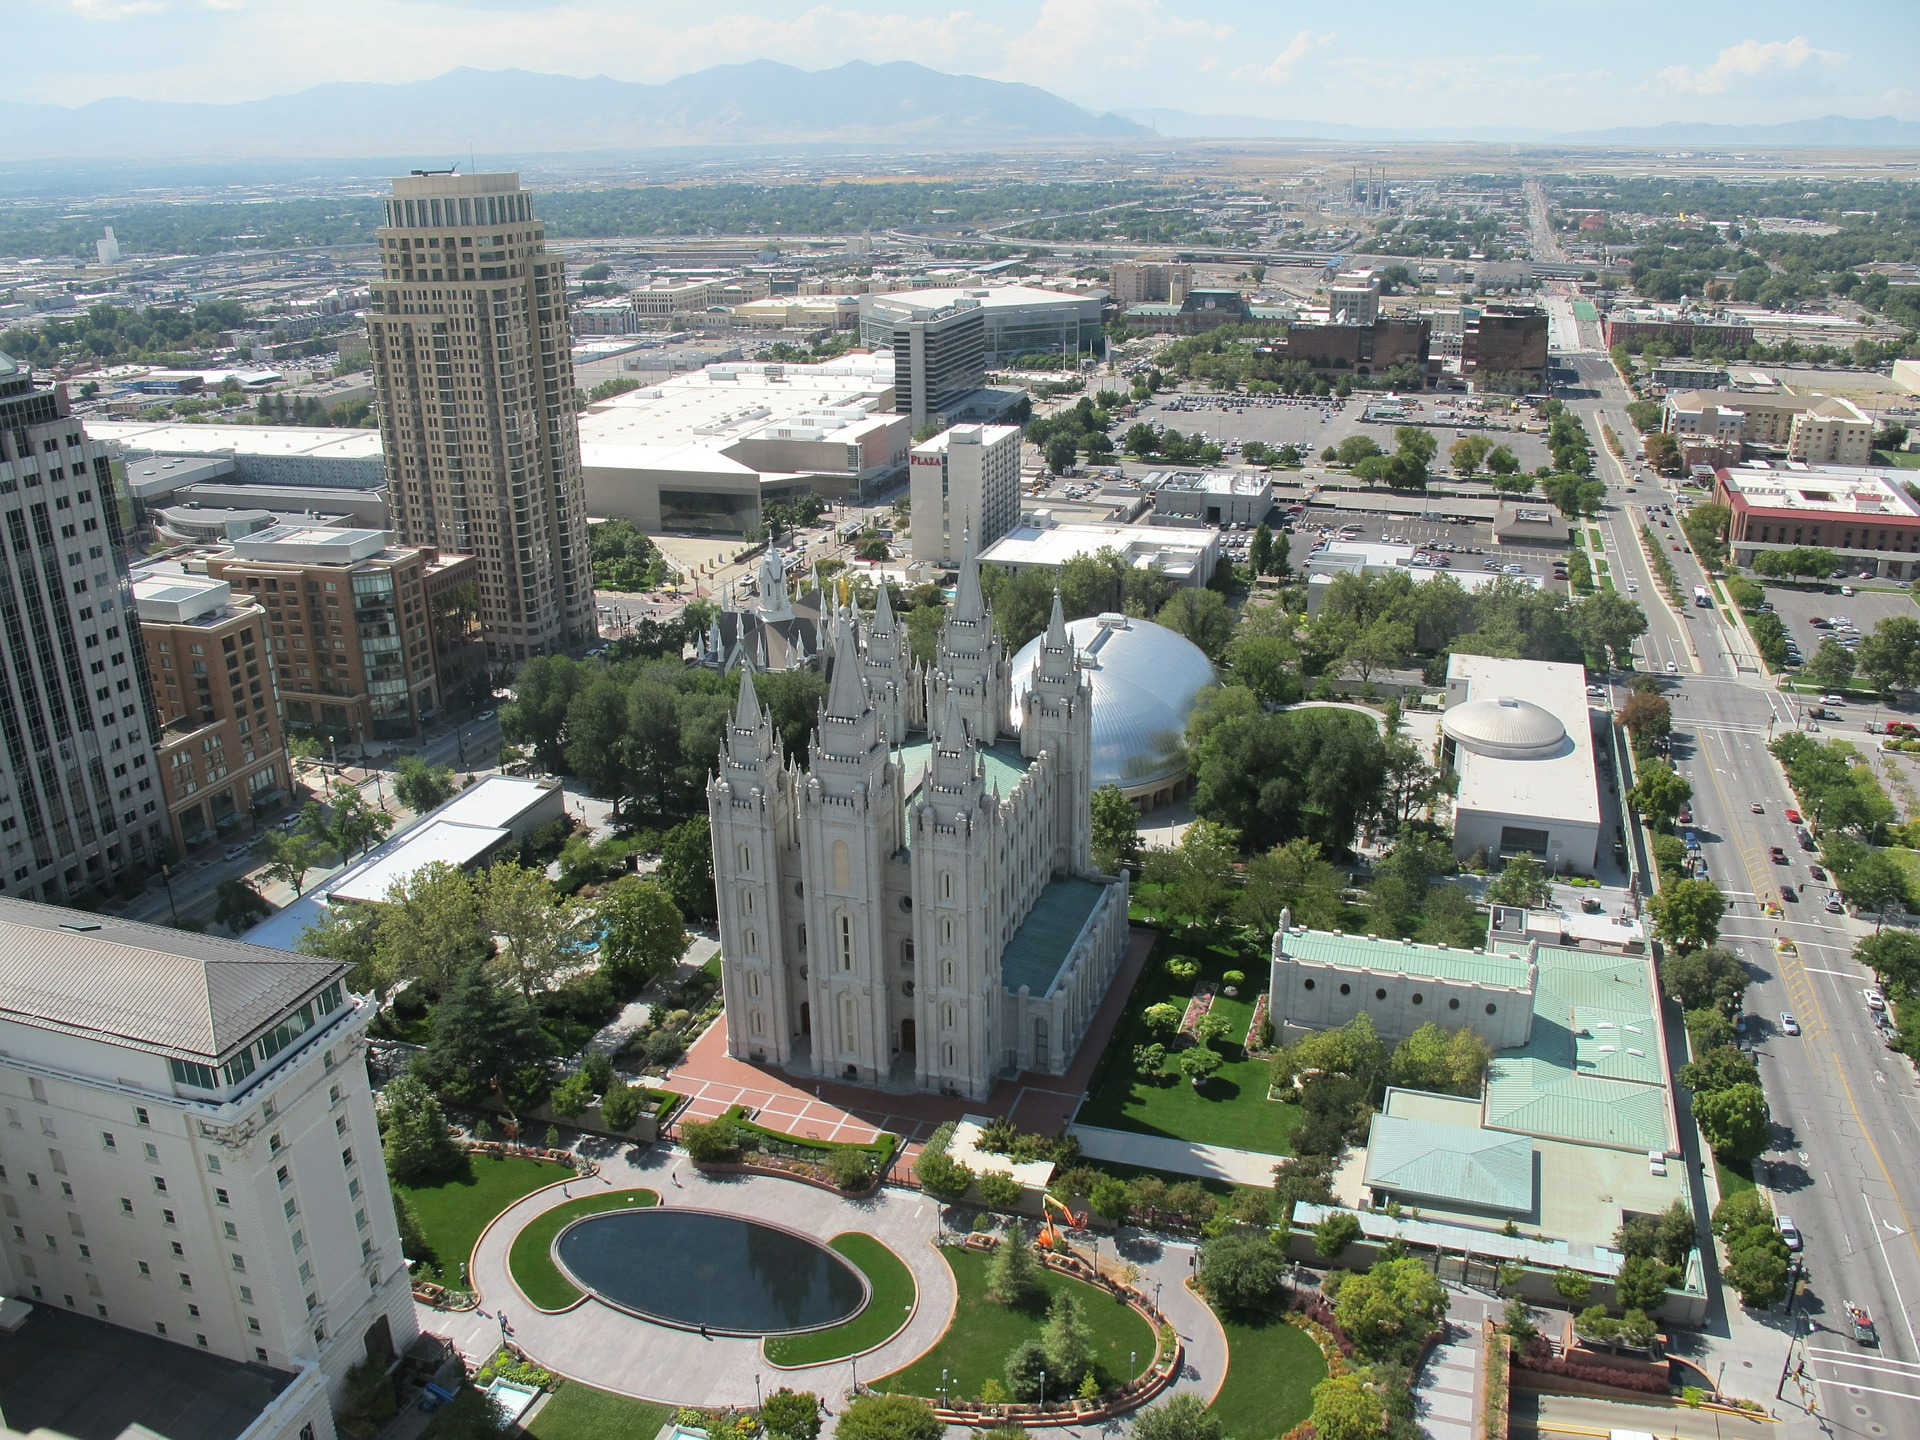 With stunning scenery and a small town feel, Salt Lake City is a one-of-a-kind destination.